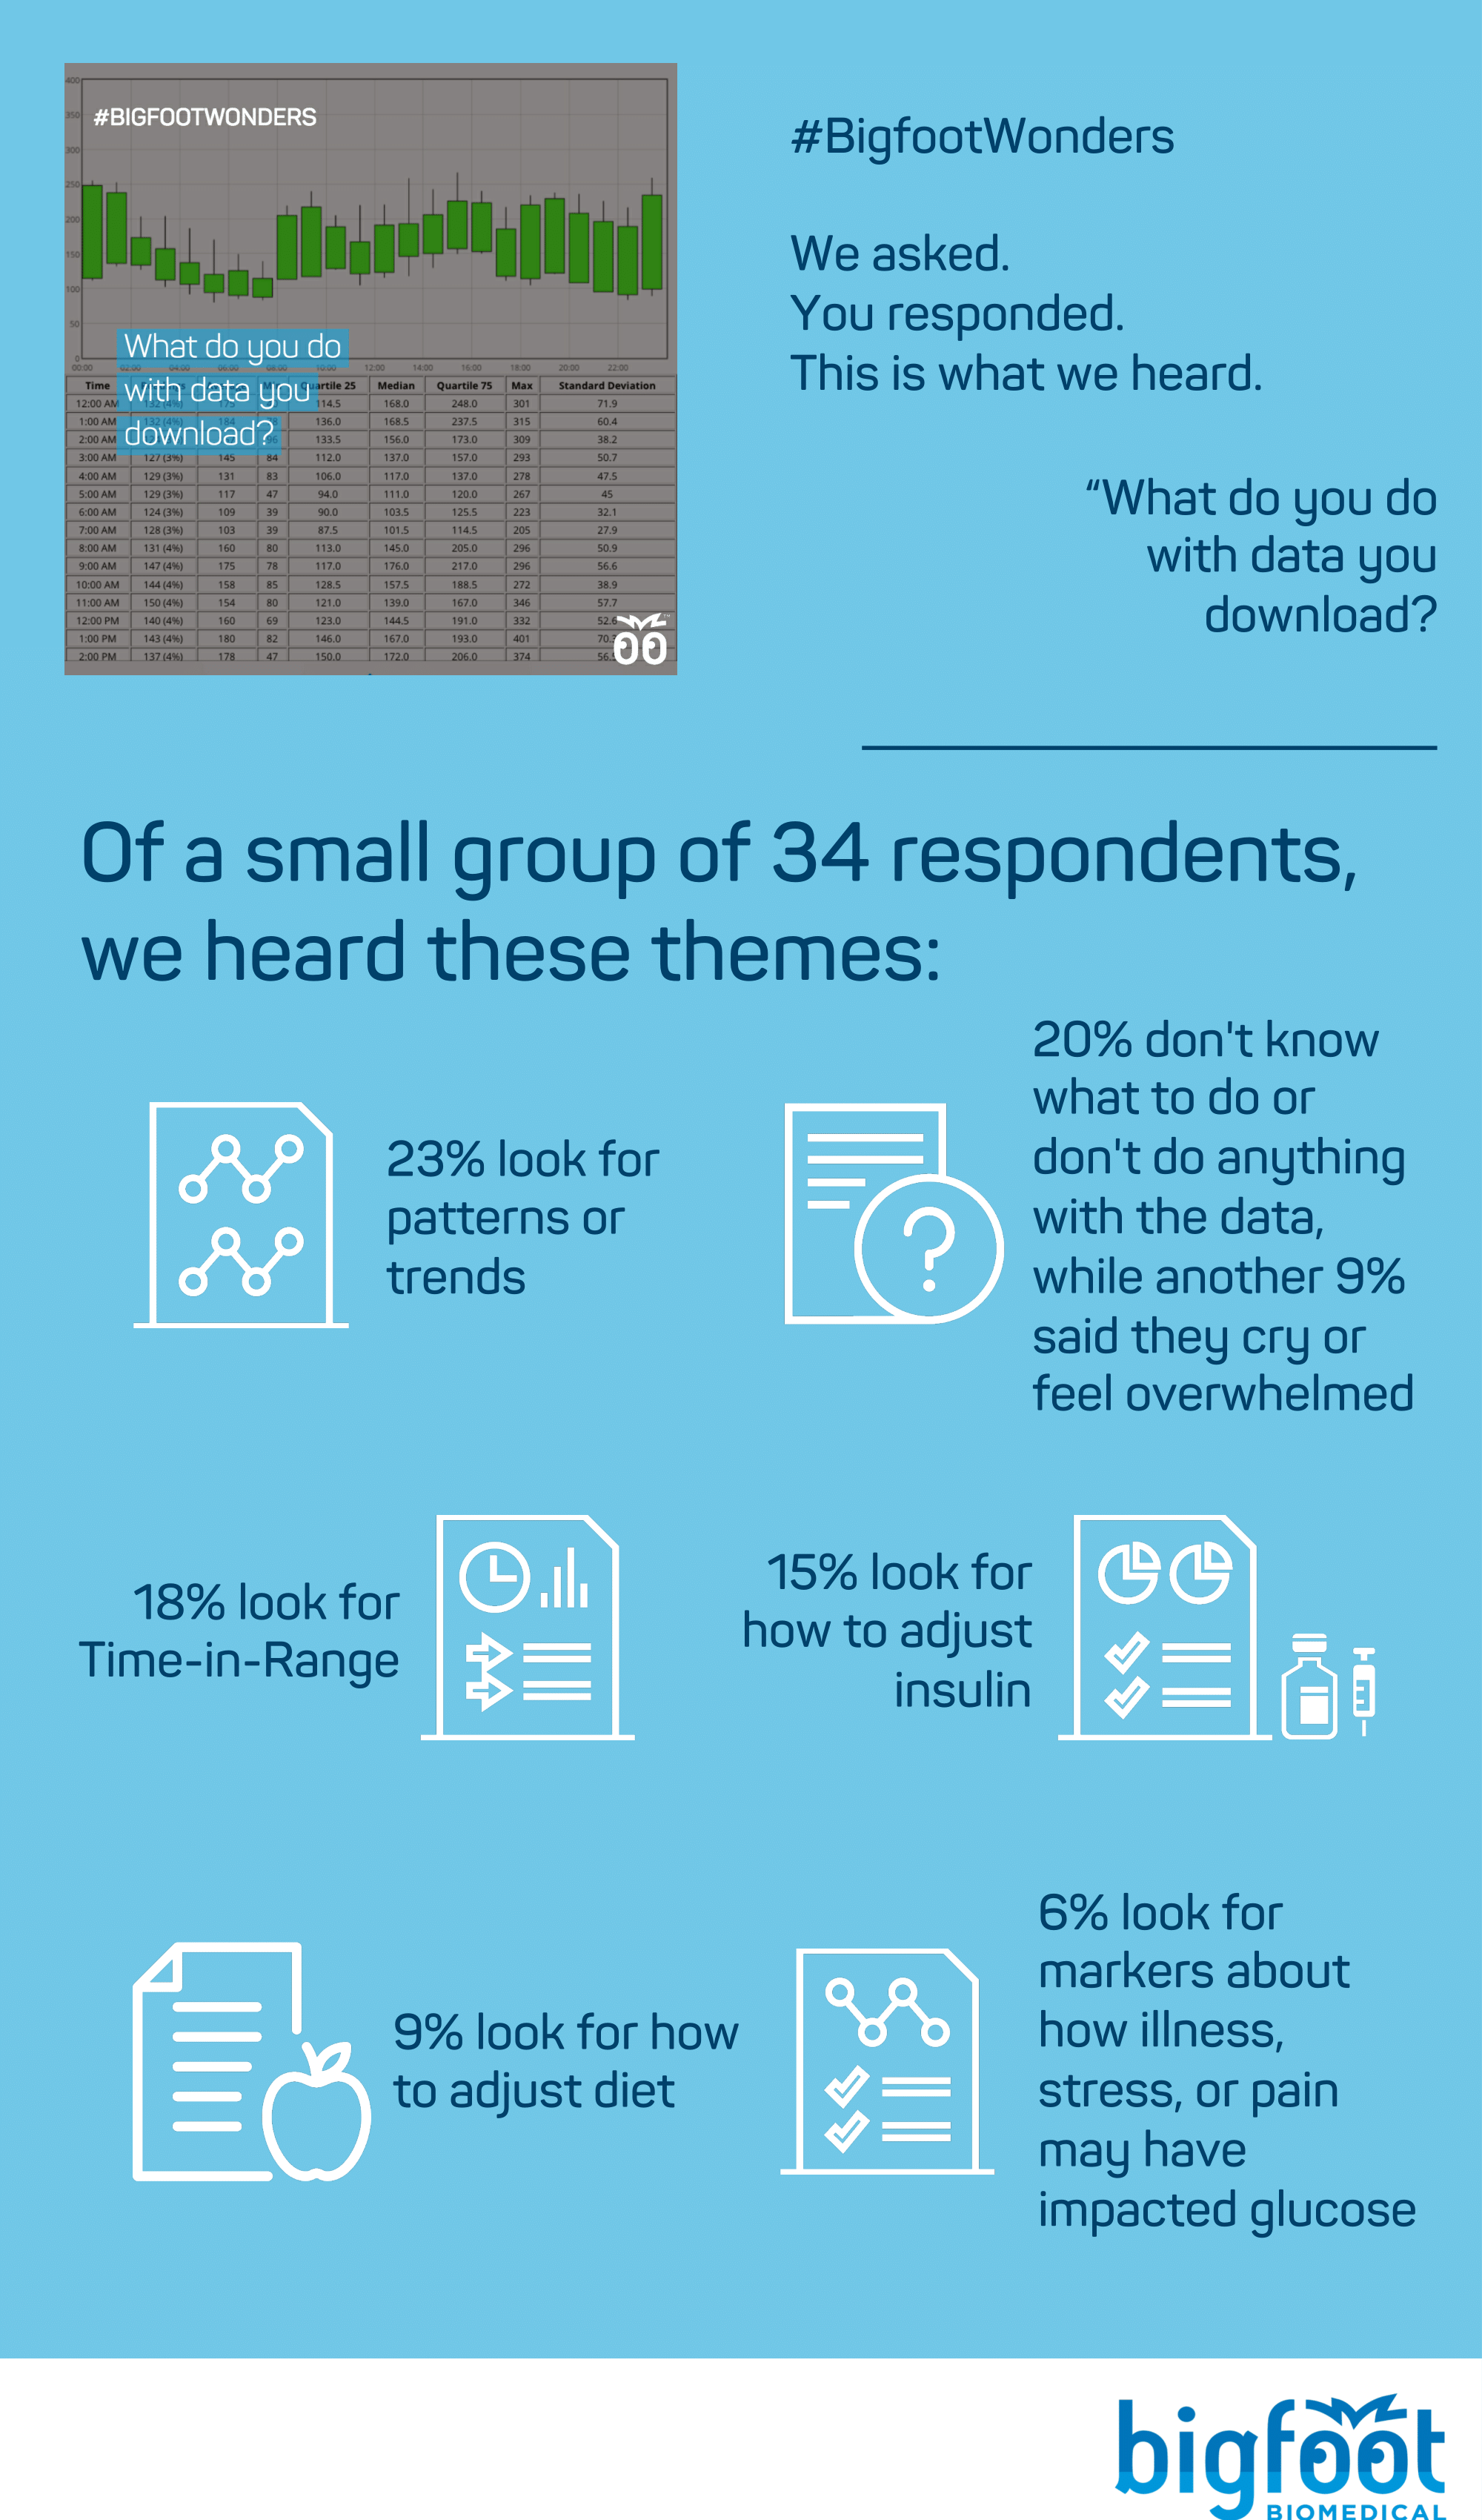 Of 34 respondents, 23% of people said they look for patterns or trends 20% said they don't know what to do with the data or don't do anything with the data, with an additional 9% saying they cry or feel overwhelmed when looking at their data, 18% said they're looking for Time-in-Range information, 15% specifically mentioned using the data to adjust their insulin, 9% mentioned adjusting diet, 6% mentioned that they are looking for markers about how illness, stress, pain may have impacted glucose control